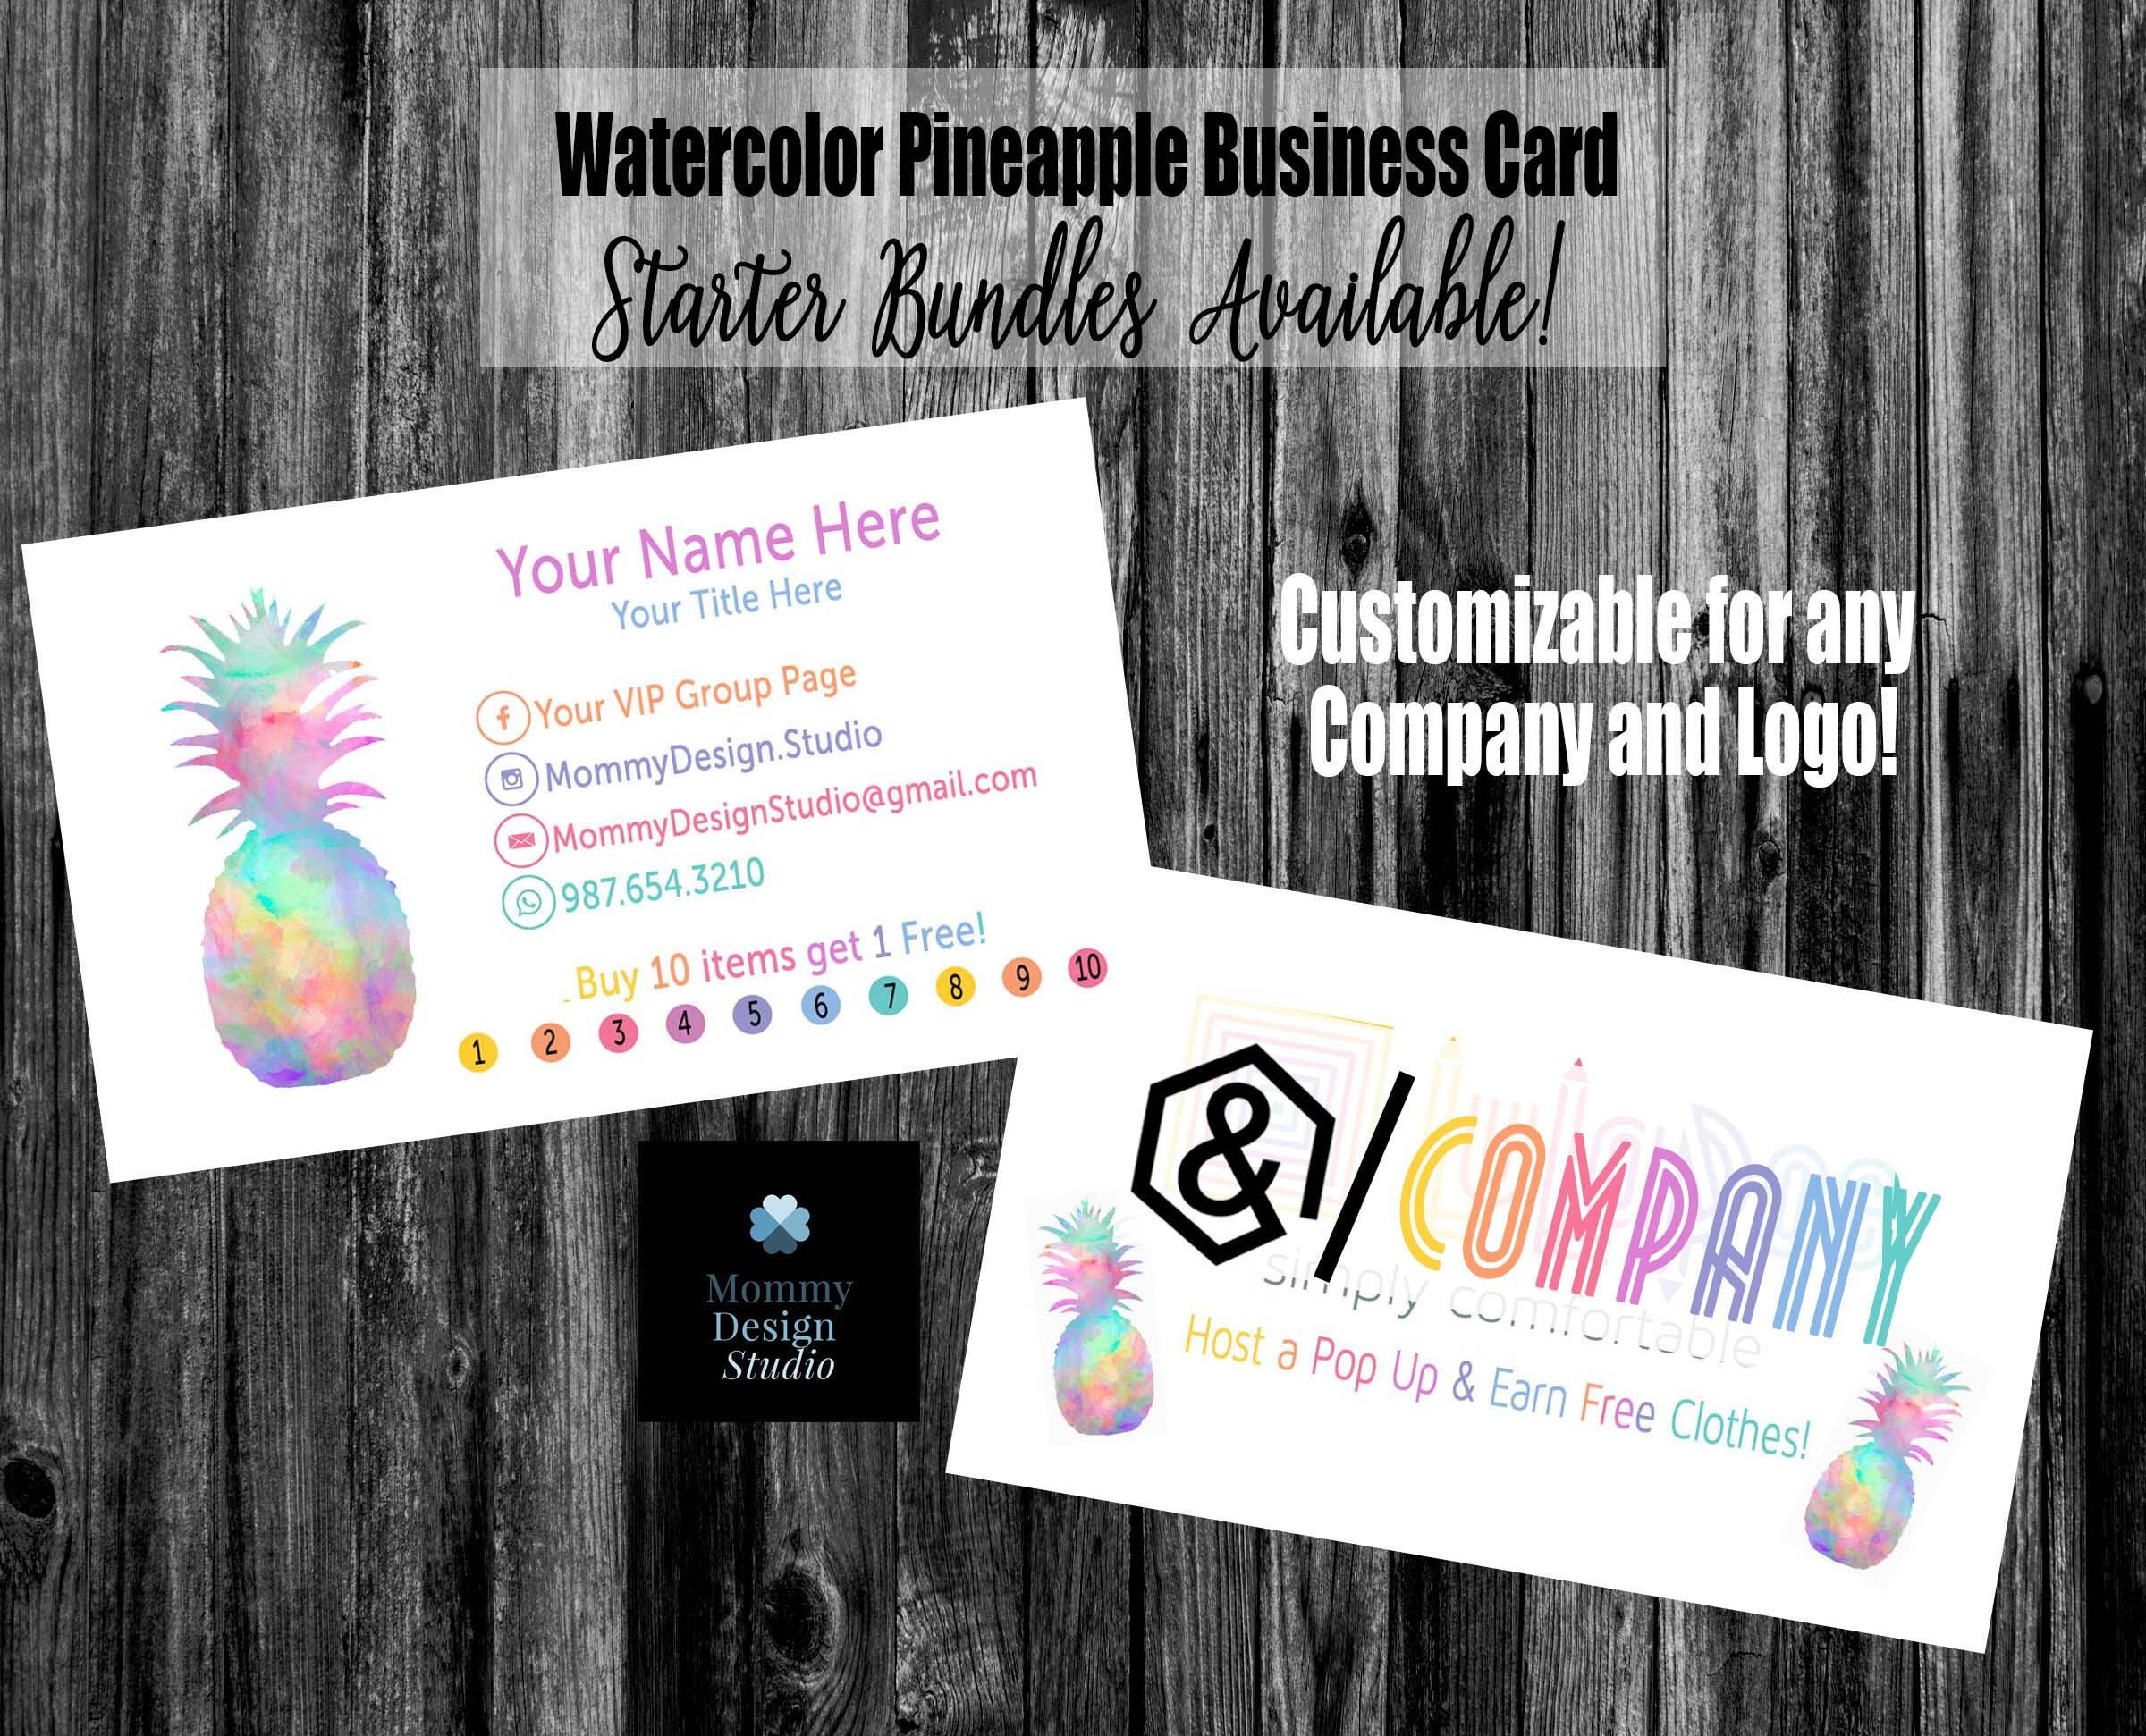 Watercolor Pineapple Business Card - Home Office Approved -Compliant ...